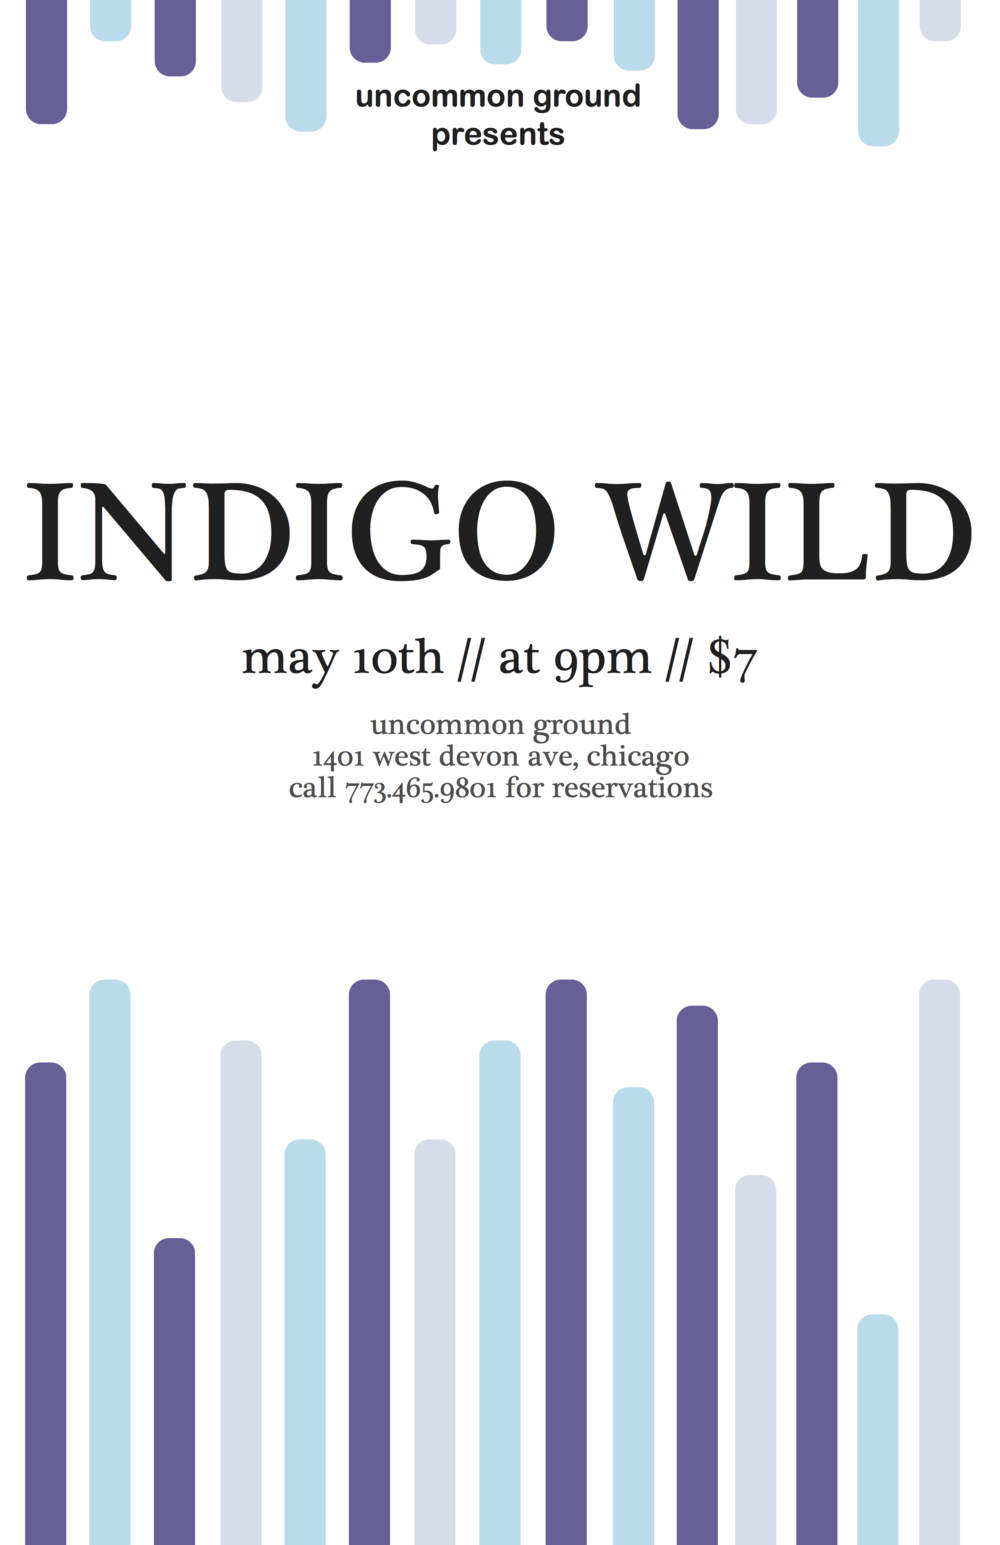 Indigo Wild at Uncommon Ground Commissioned by Uncommon Ground  | Laser Jet Print & Web Use